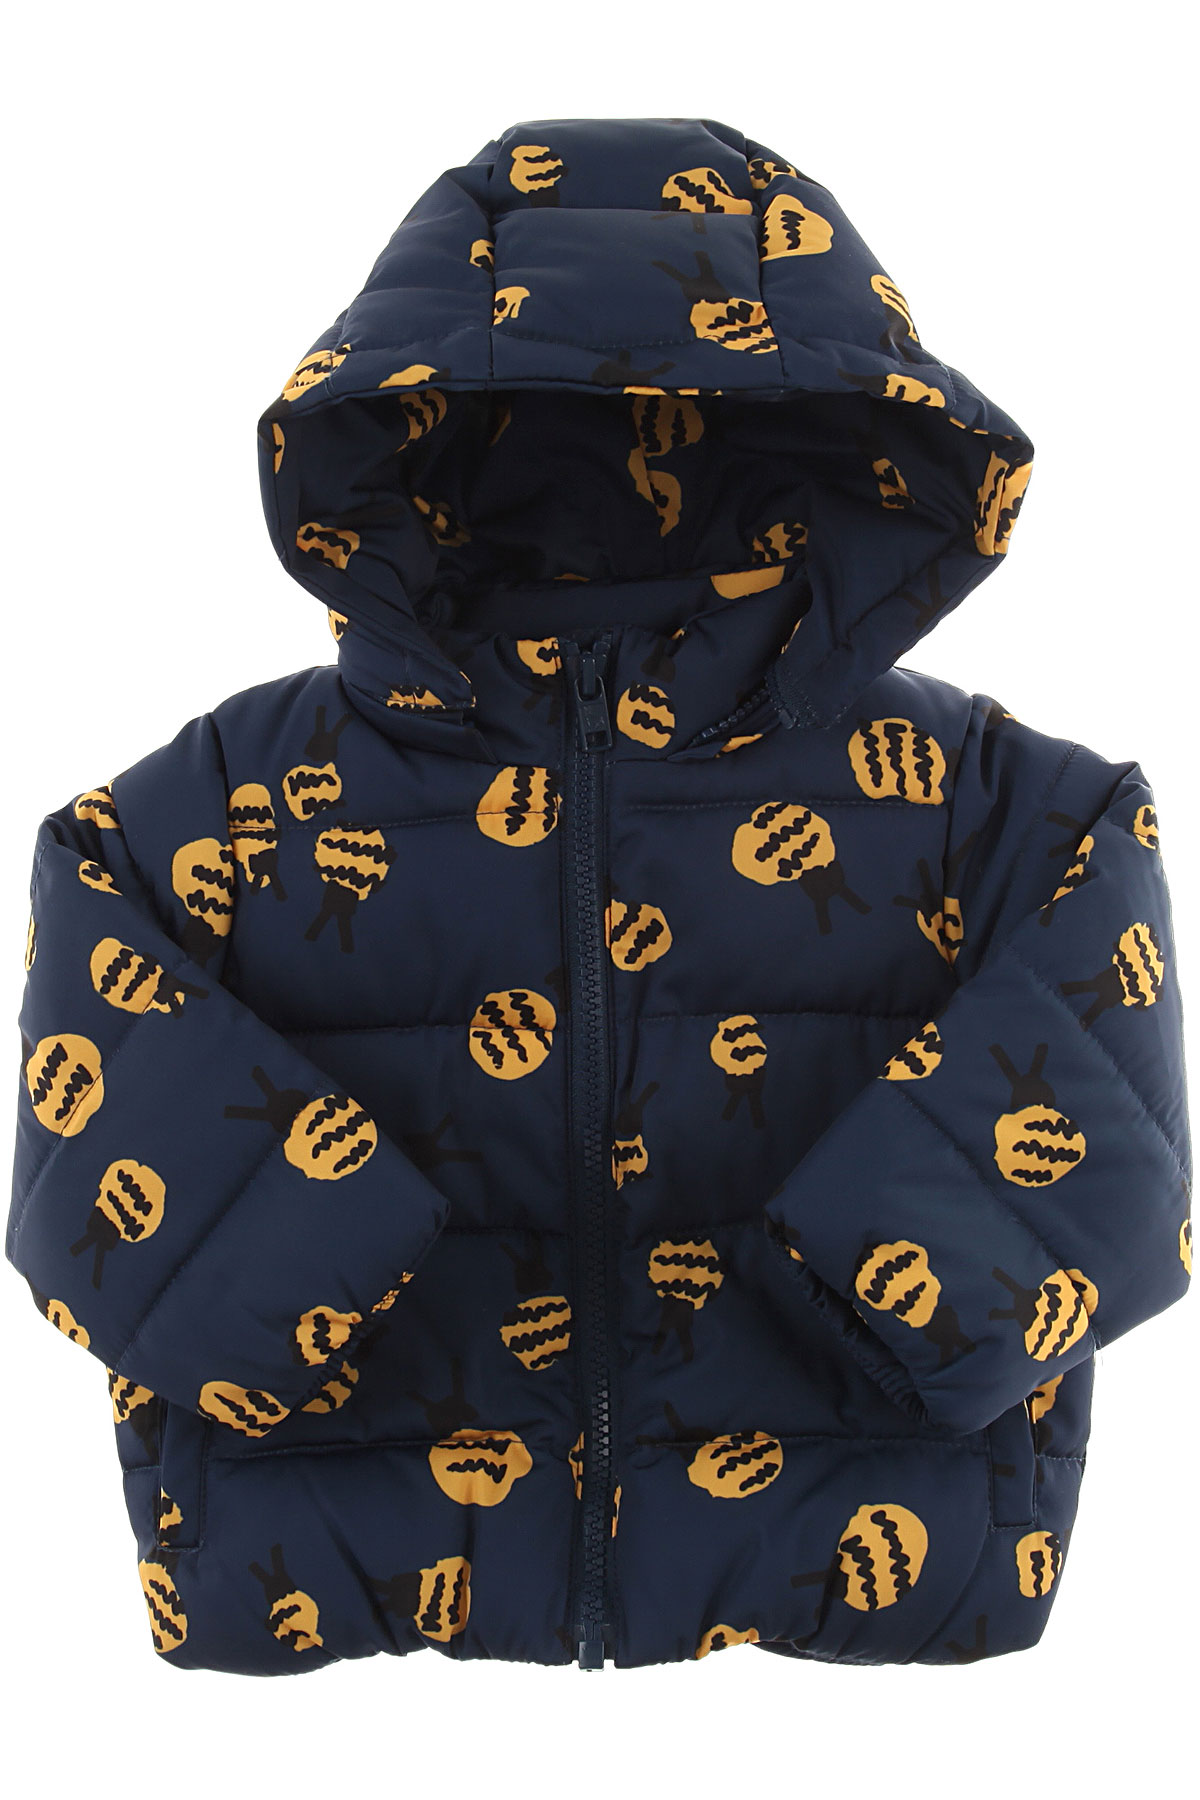 Image of Stella McCartney Baby Down Jacket for Boys, Blue, polyester, 2017, 12M 2Y 3Y 6M